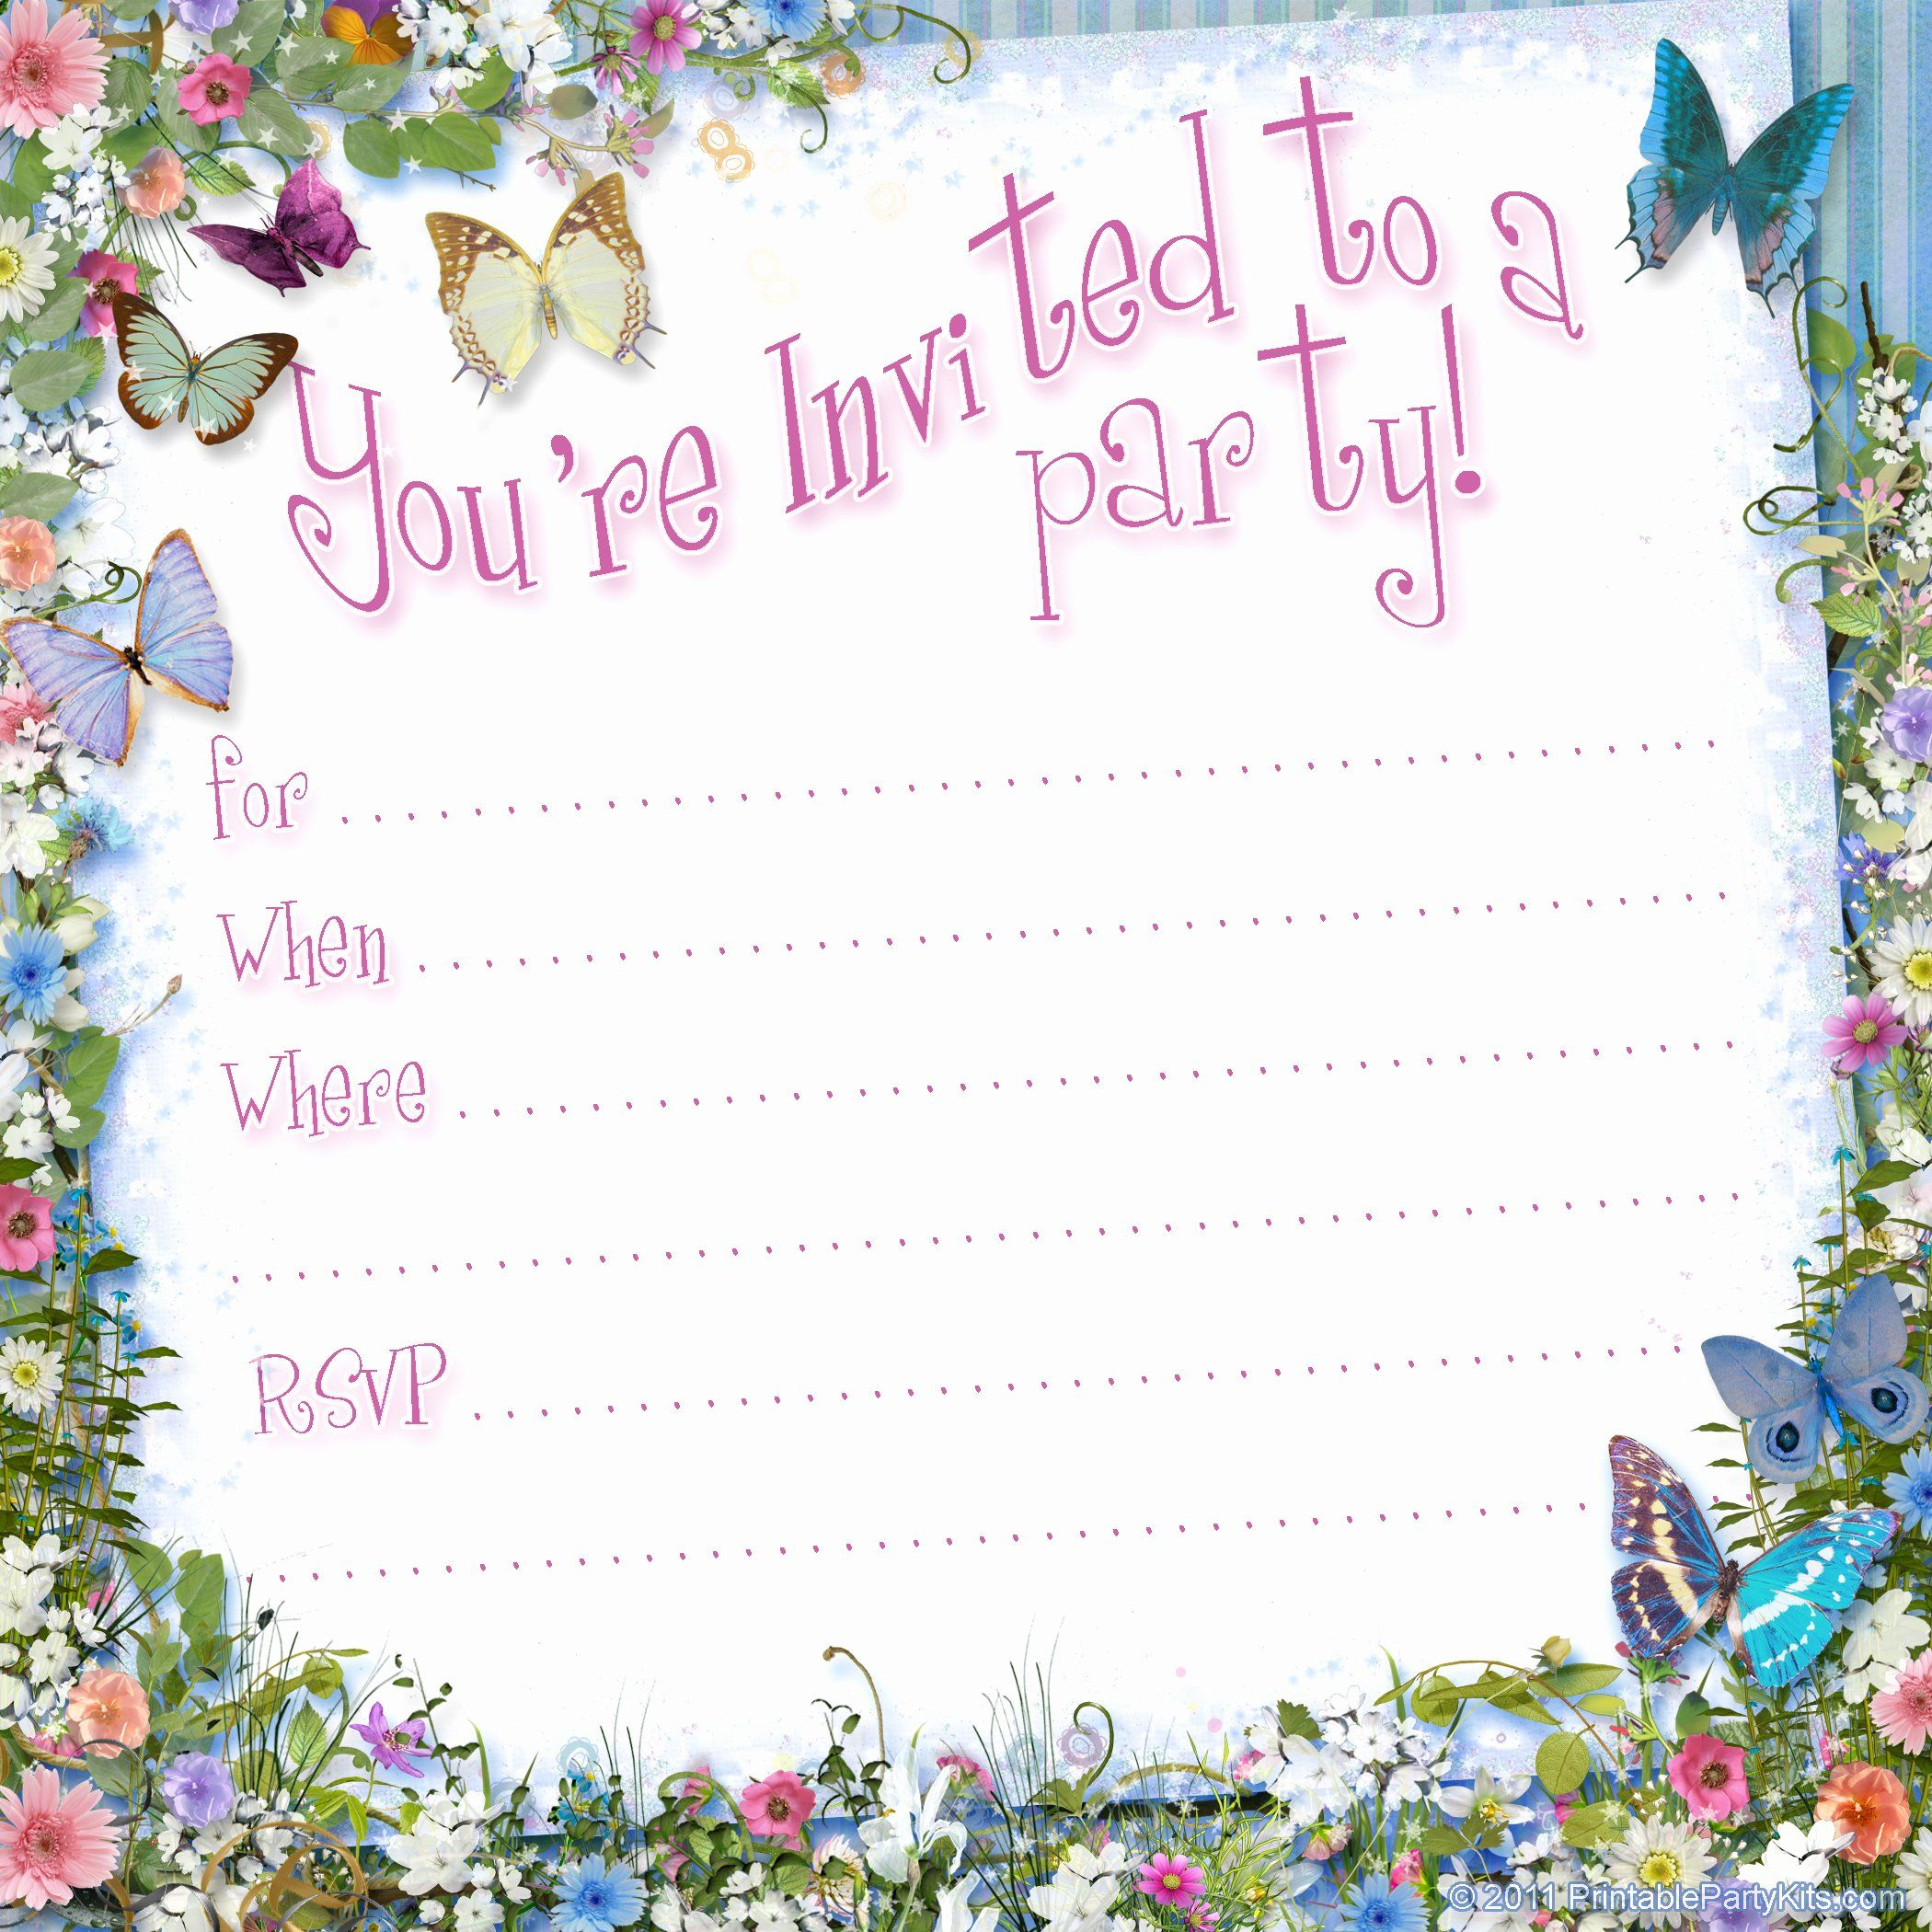 Free Party Invitation Templates Beautiful Free Printable Girls Birthd… | Party  invite template, Free party invitation templates, Free printable birthday  invitations